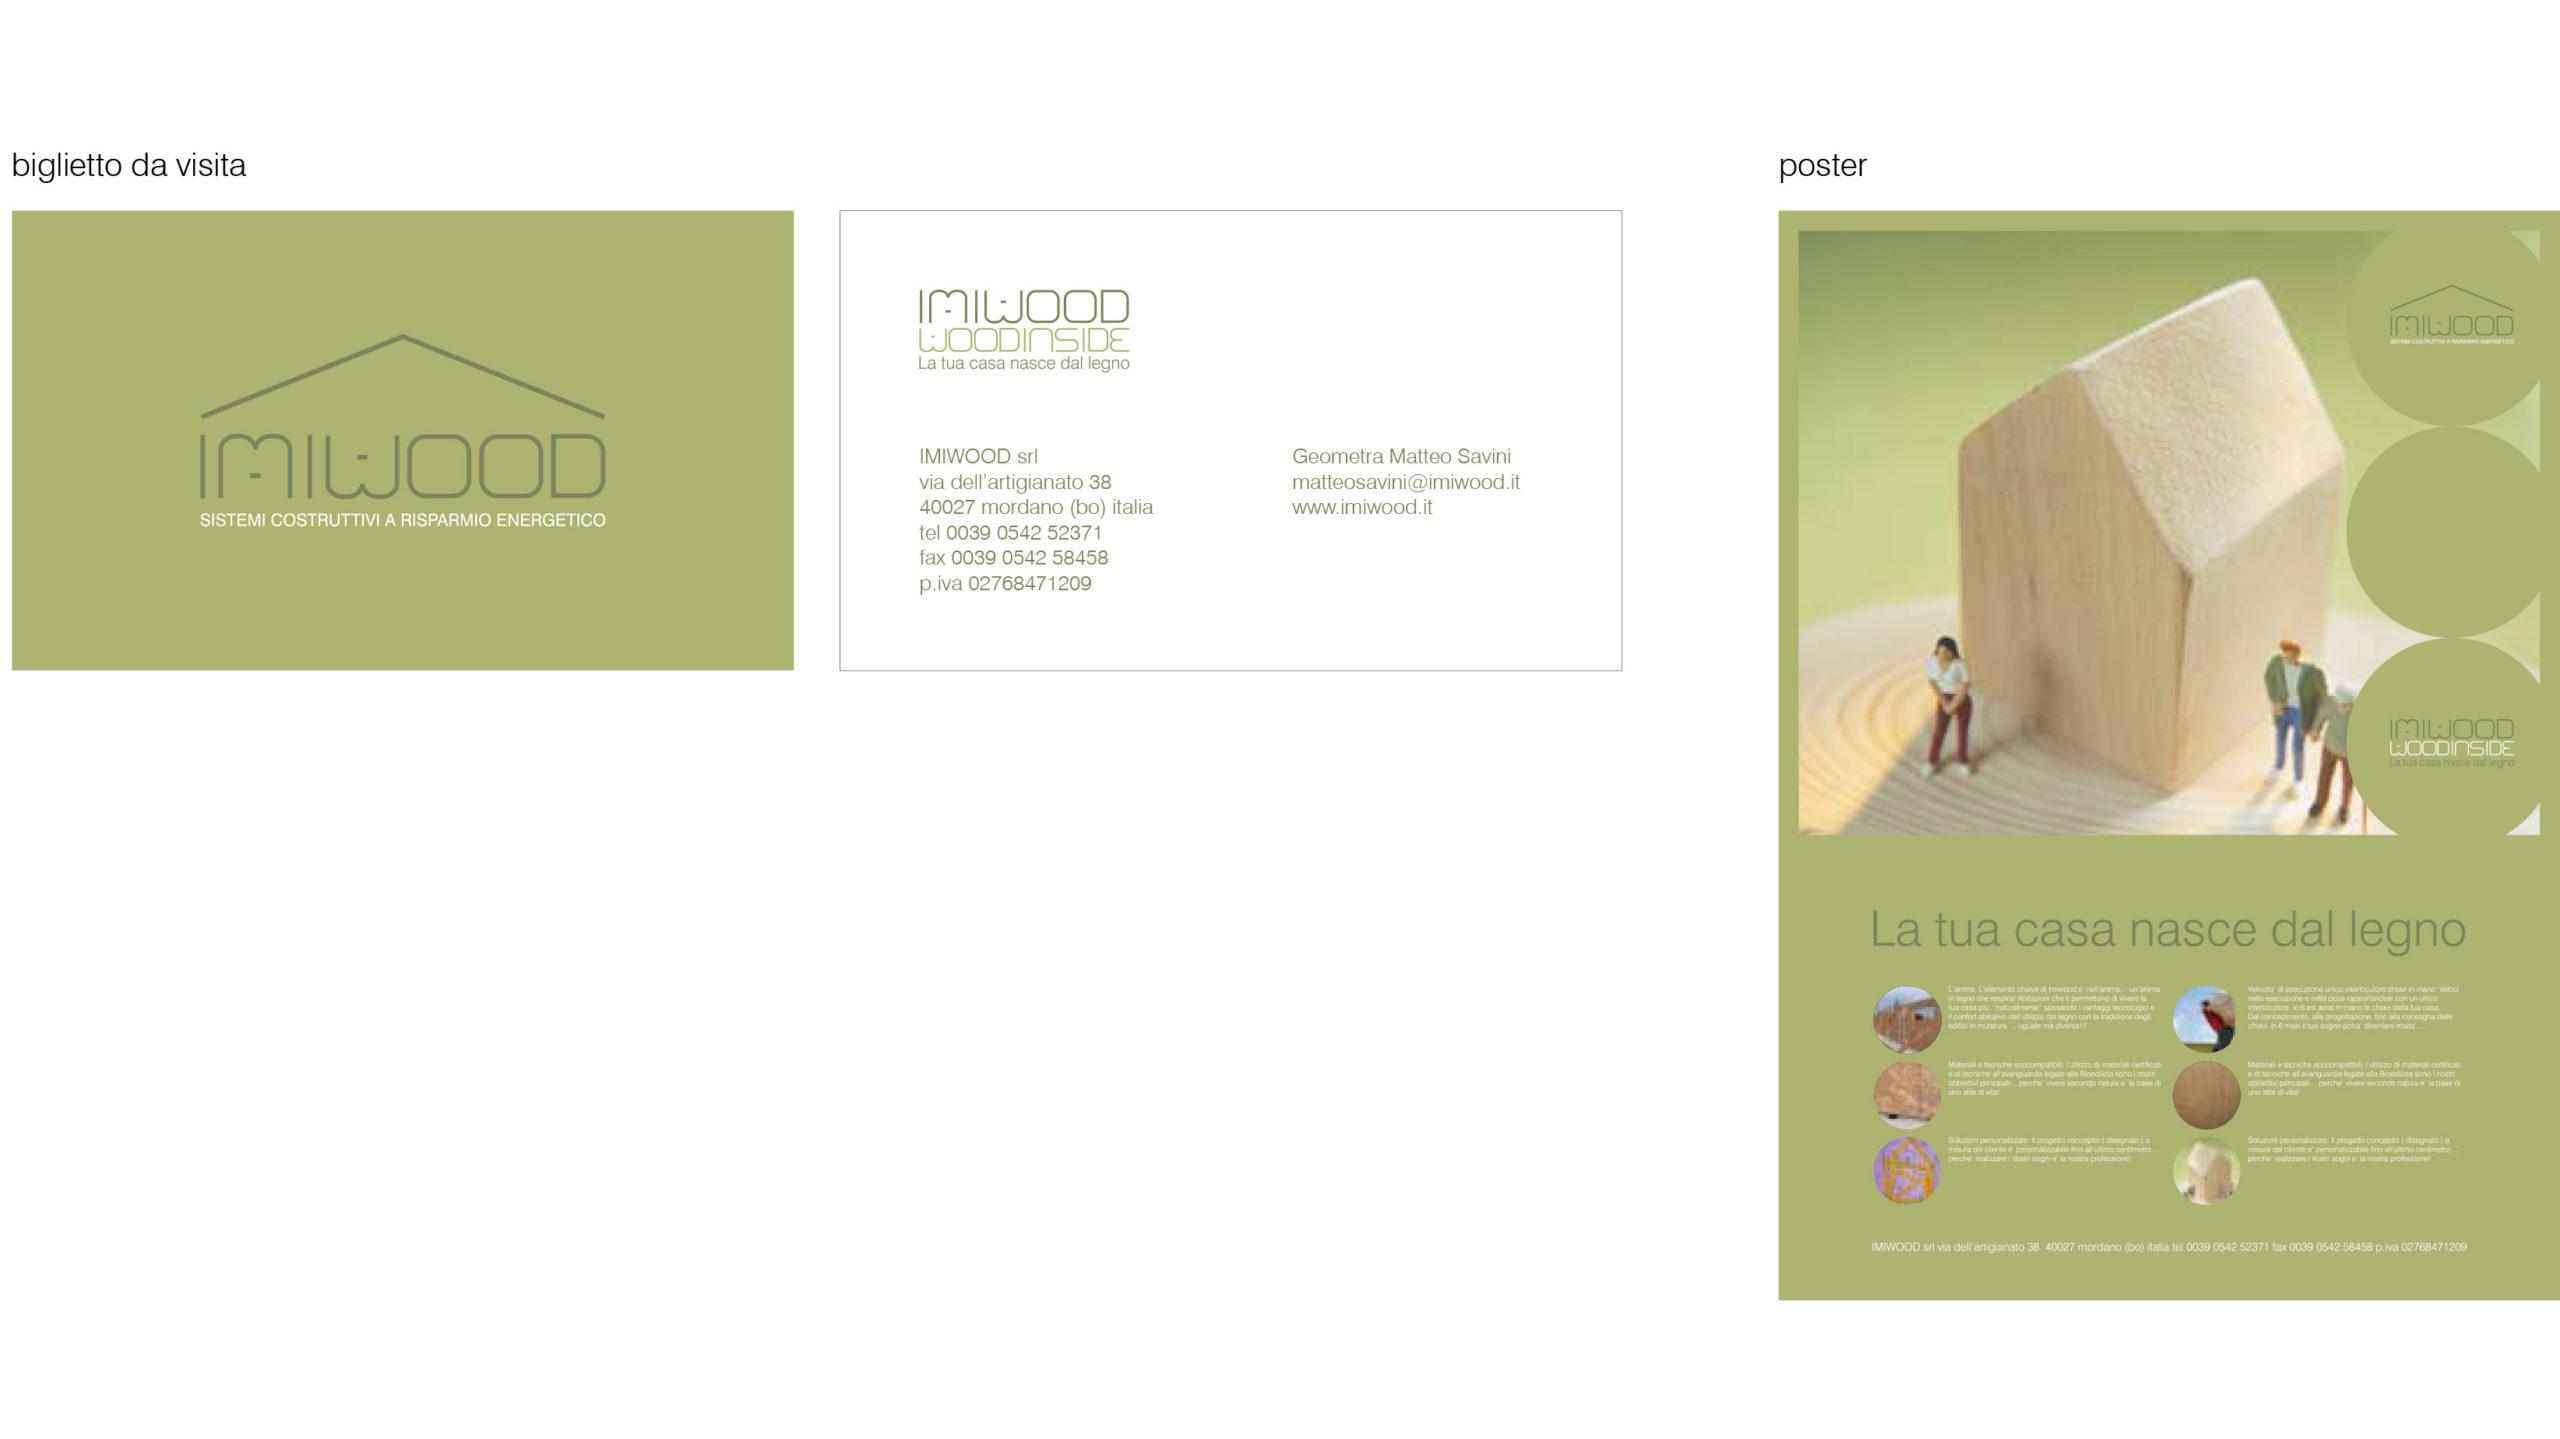 Imiwood-immagine-business-card